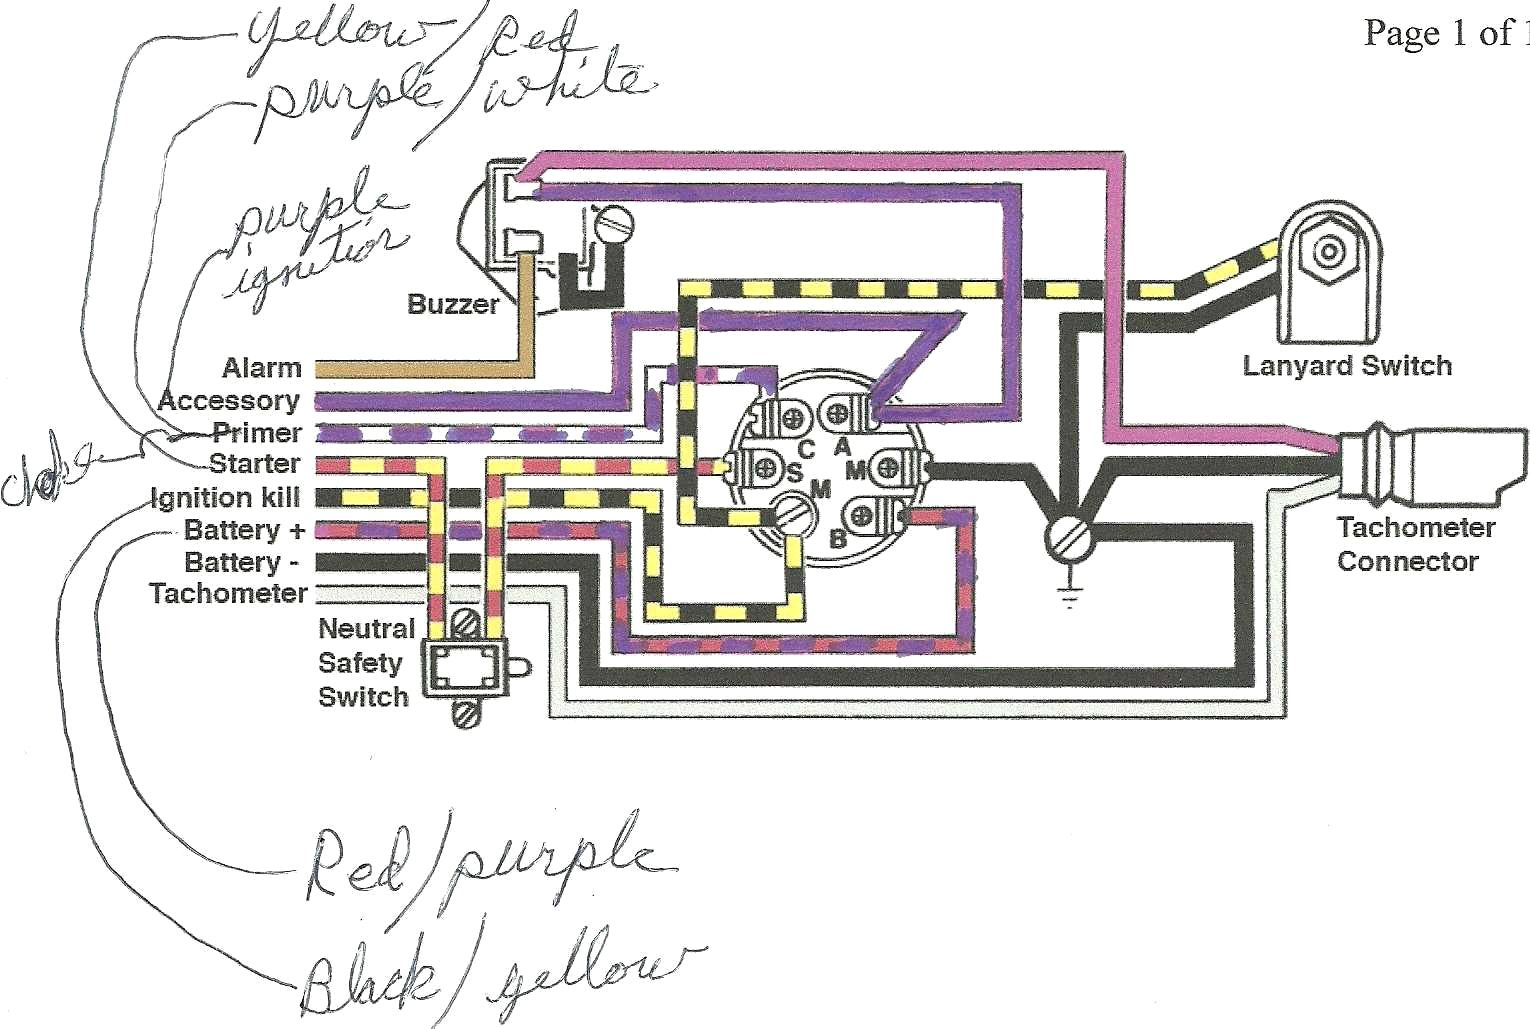 mercury verado engine diagram wire management wiring diagram mercury dts wiring diagram [ 1530 x 1029 Pixel ]